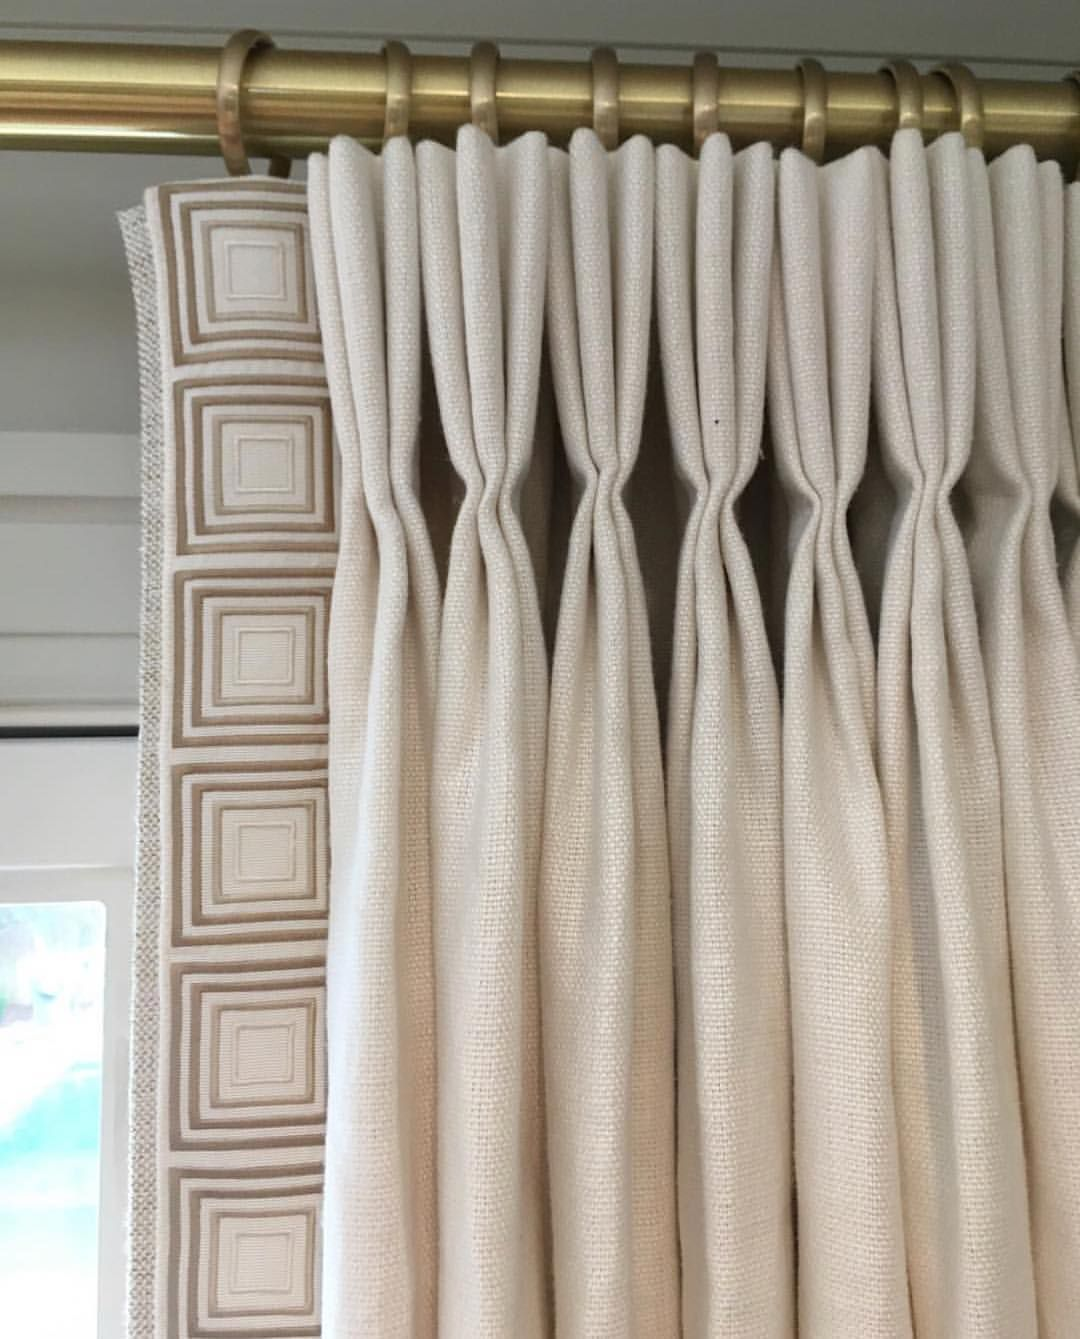 Curtain Leading Edge Ideas: Pin By Nancy Linton On Home Decor